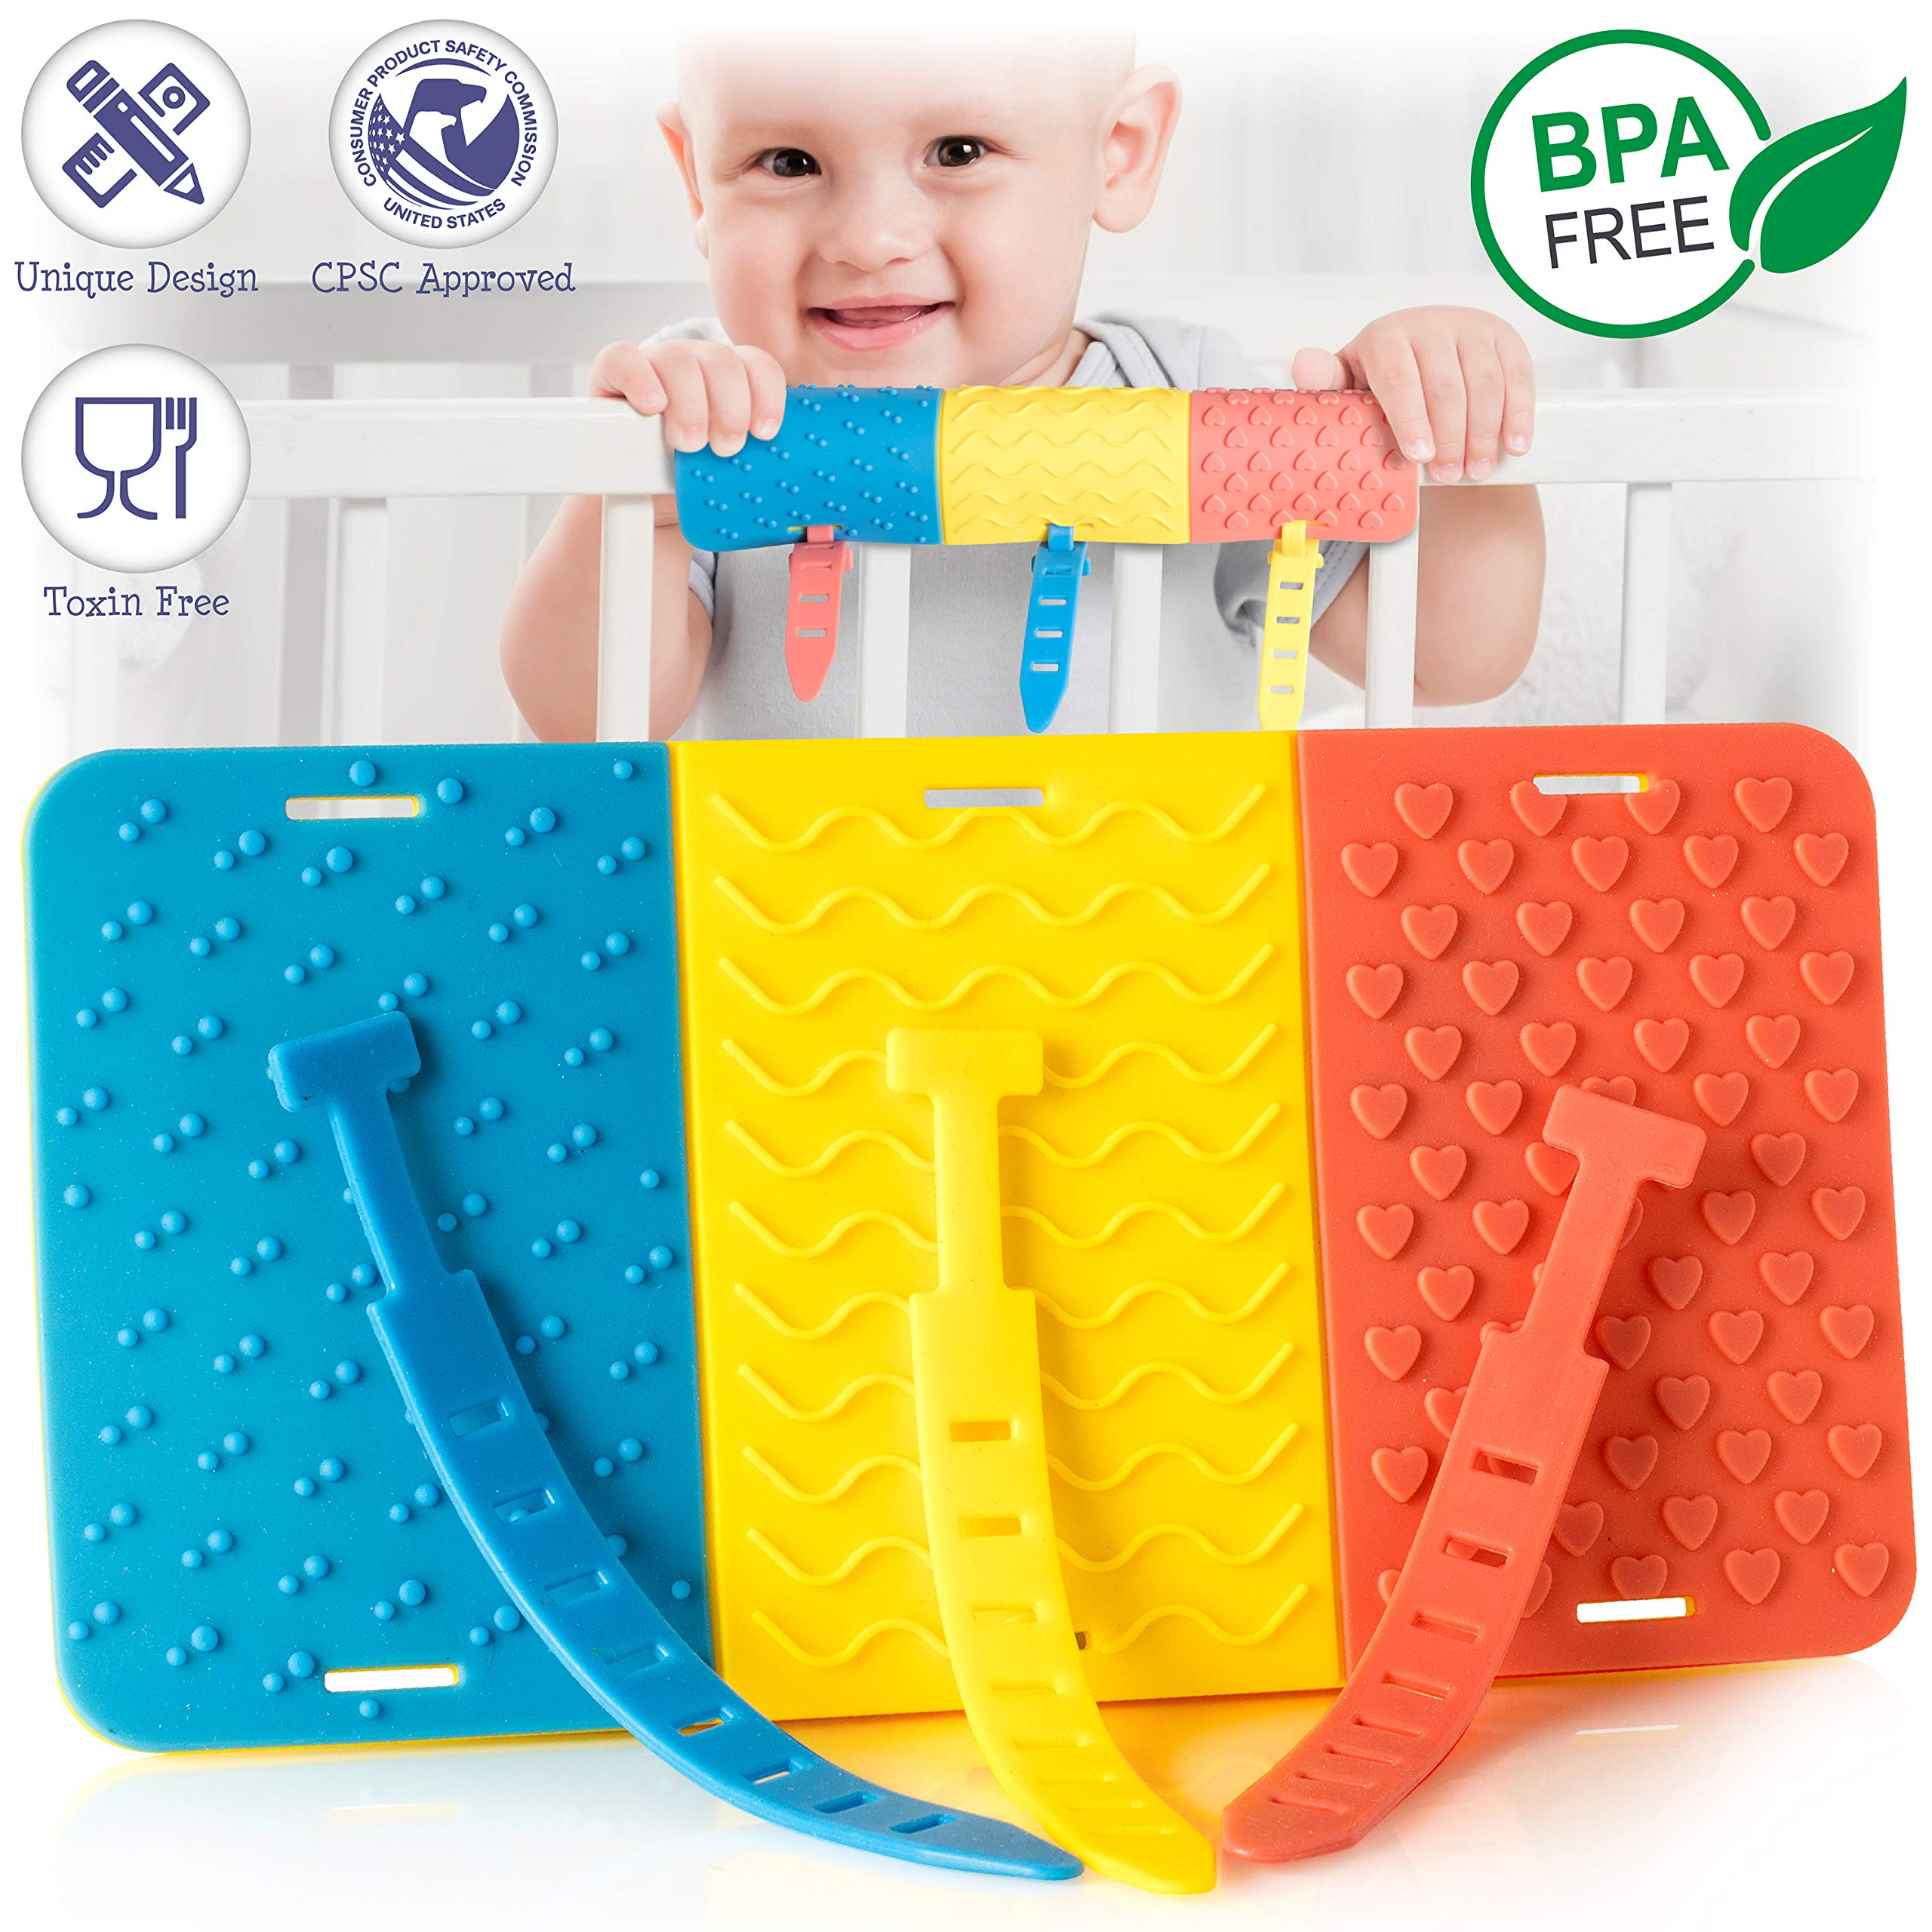 Crib Rail Teether for Baby - Innovative Crib Guard & Toy for Teething - Munchoo Protects Baby from Paint Chips, Splinters and Chemicals from Biting The Crib - Colorful, Safe, Washable, Easy to Use by Astoot